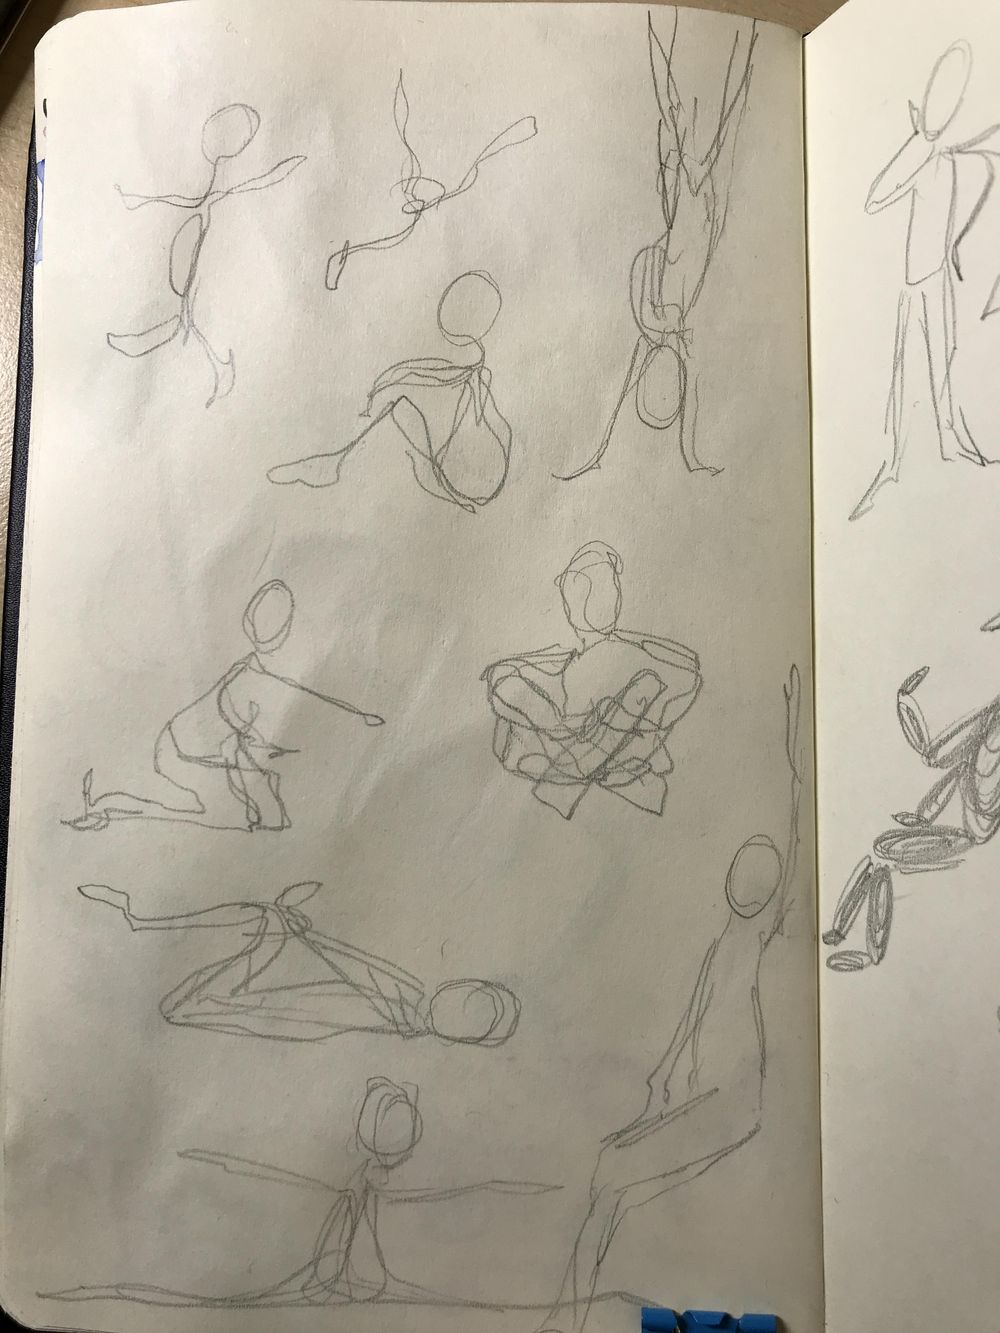 Female Body sketching - image 5 - student project